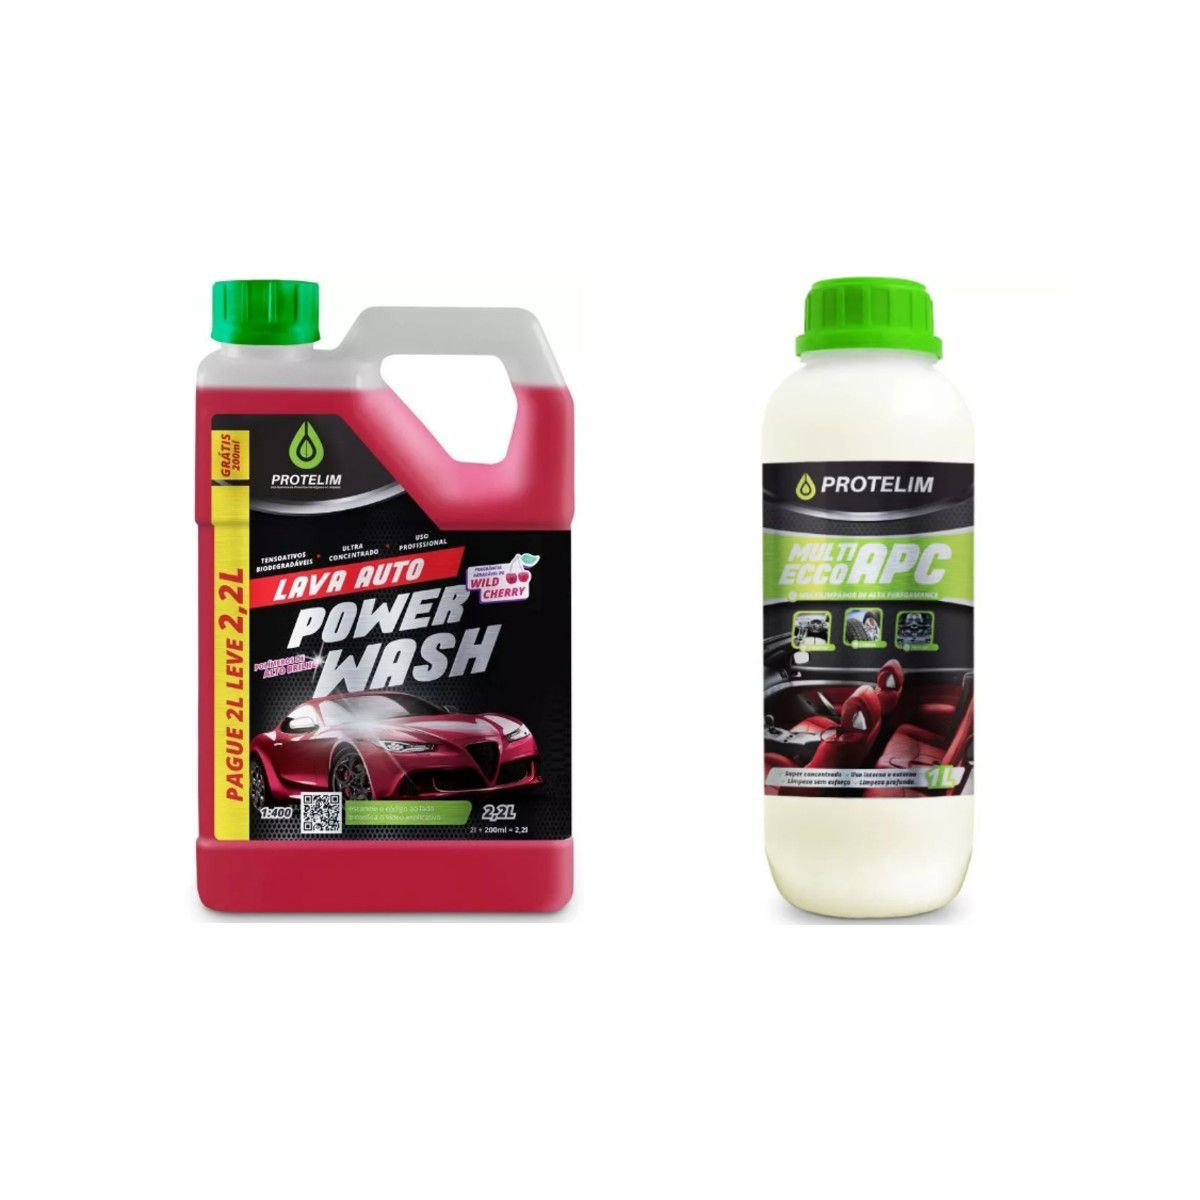 Shampoo Automotivo Lava Auto Power Wash + APC Multilimpador